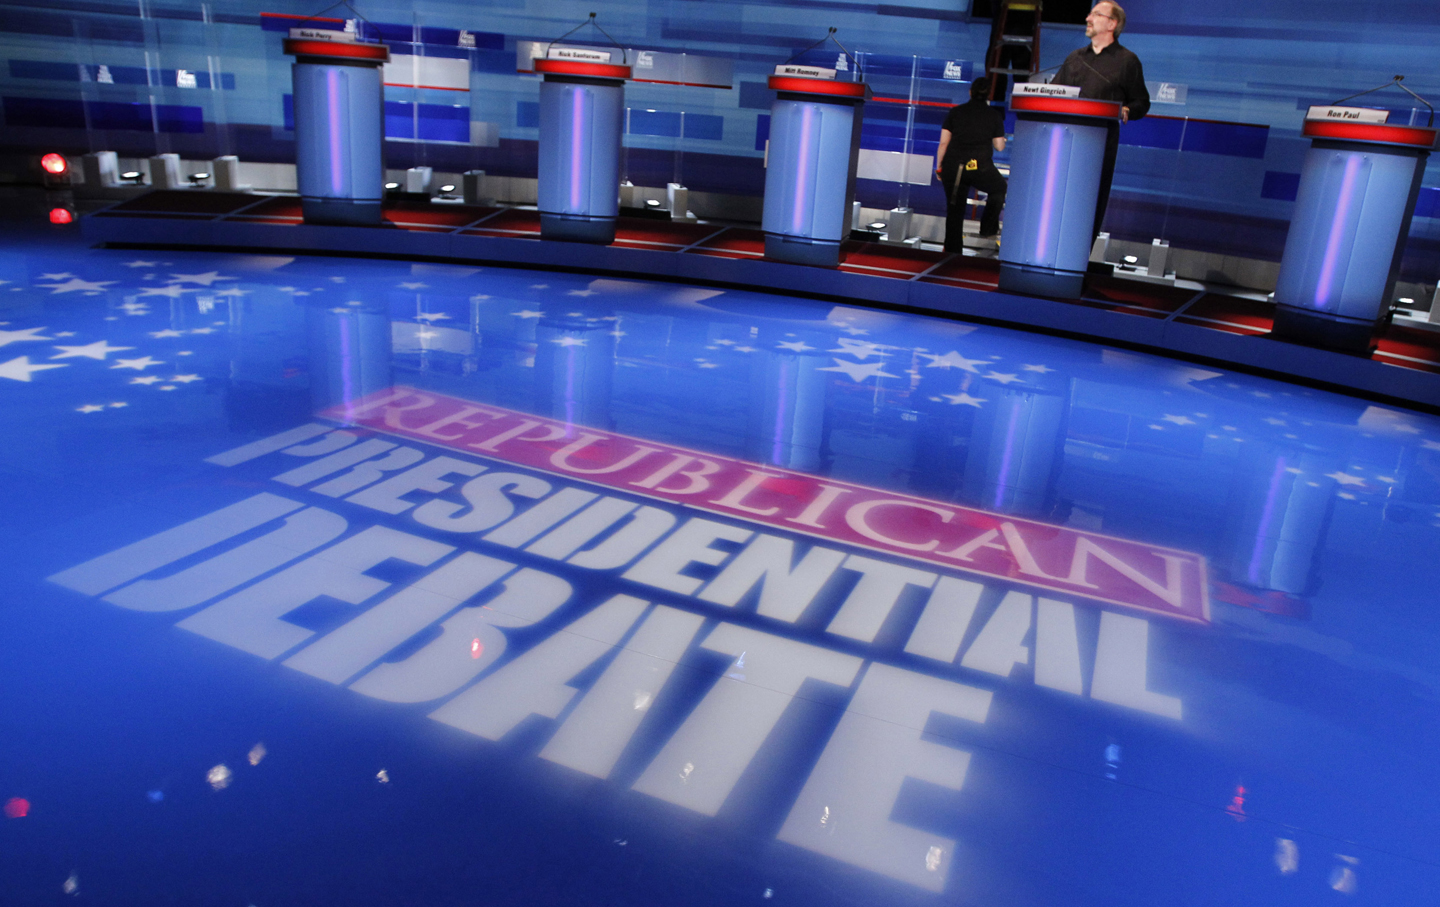 Debate stage